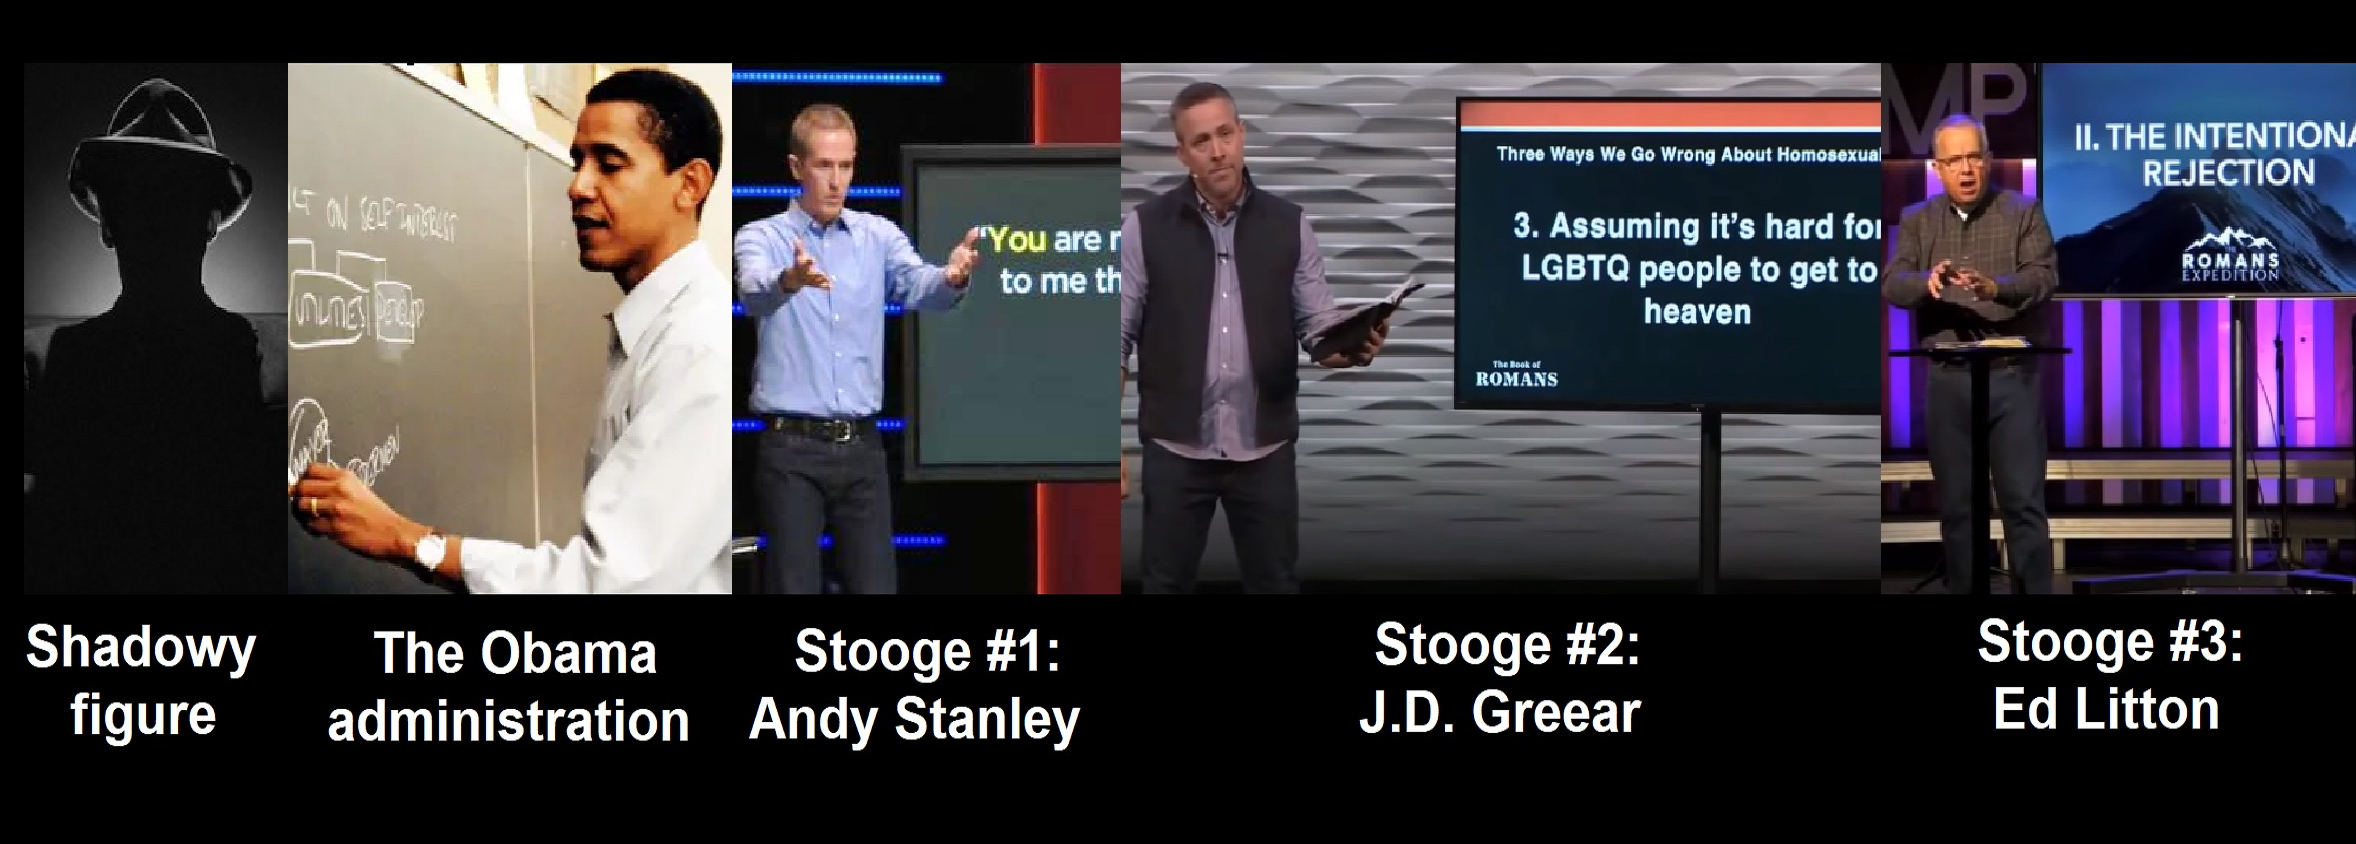 Daniel Whyte III's Theory Regarding Ed Litton and J.D. Greear's Plagiarism Sermongate Hell and the Case of the Three Stooges